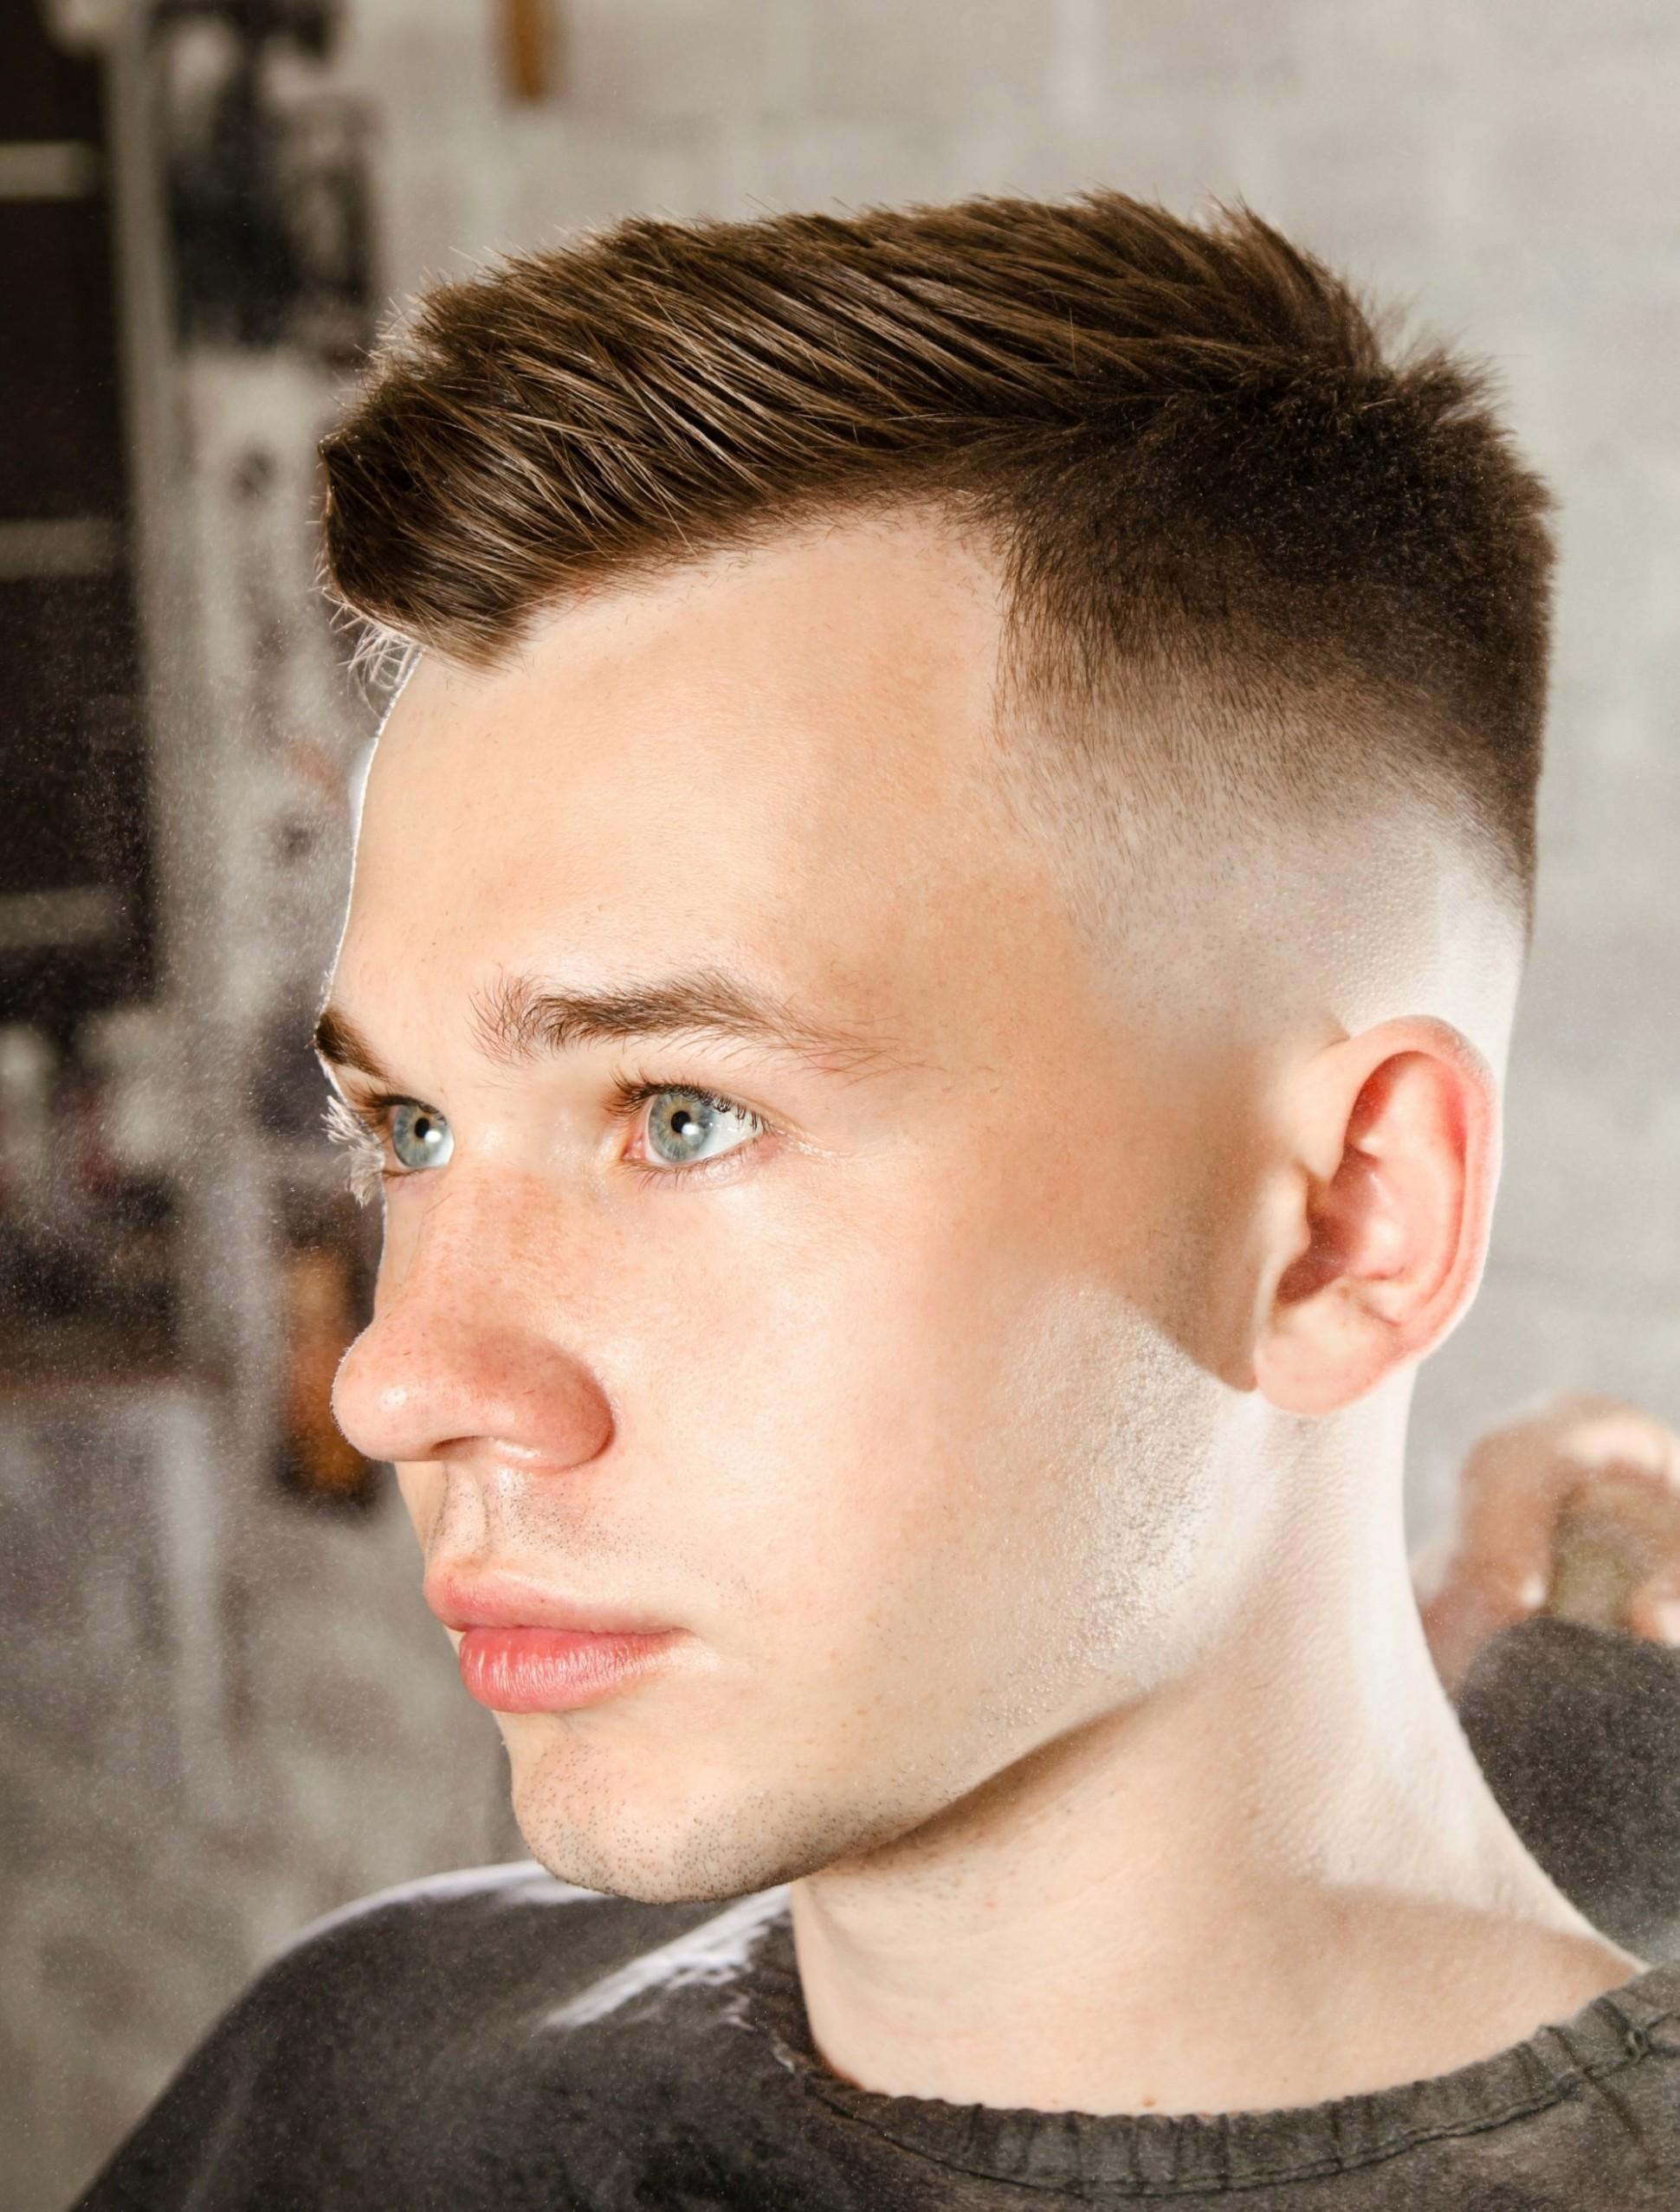 9 Cool Ways To Wear The Mohawk Fade All Things Hair PH Mohawk Fade Short Hair